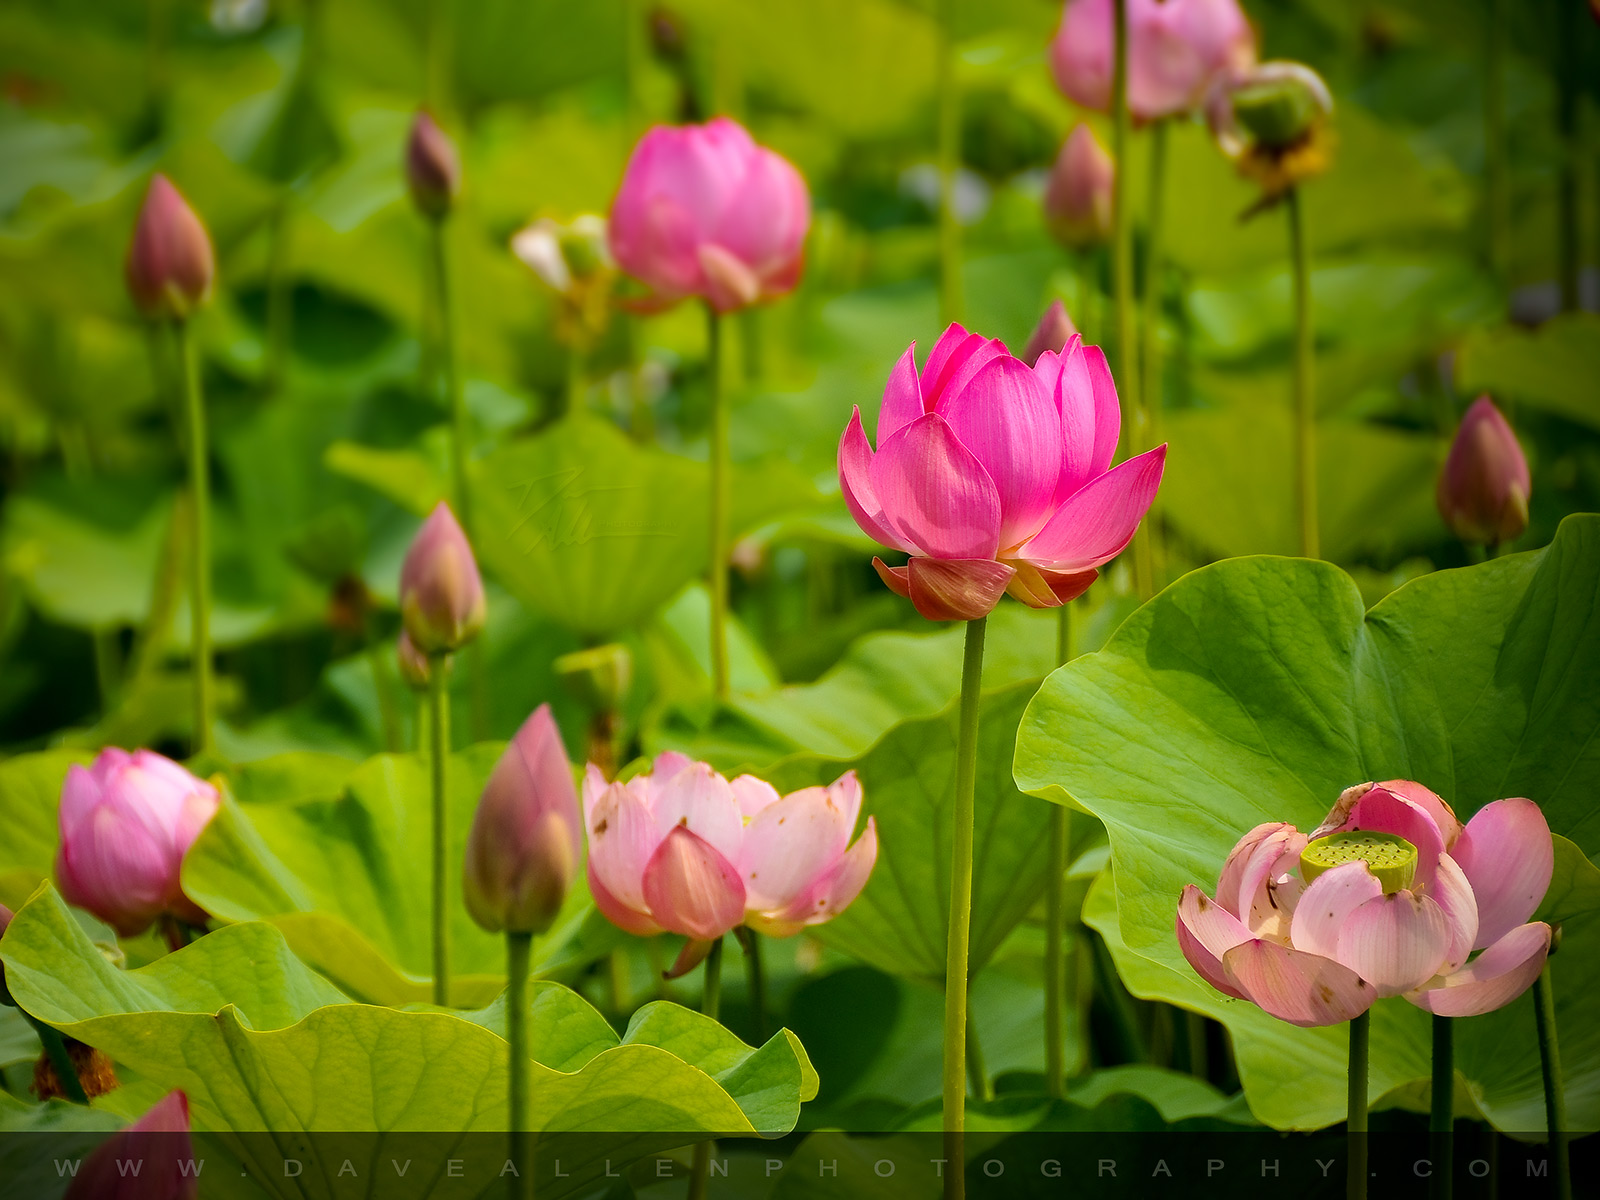 Download Beautiful Collection Of 28 Lotus Flower Desktop Wallpapers